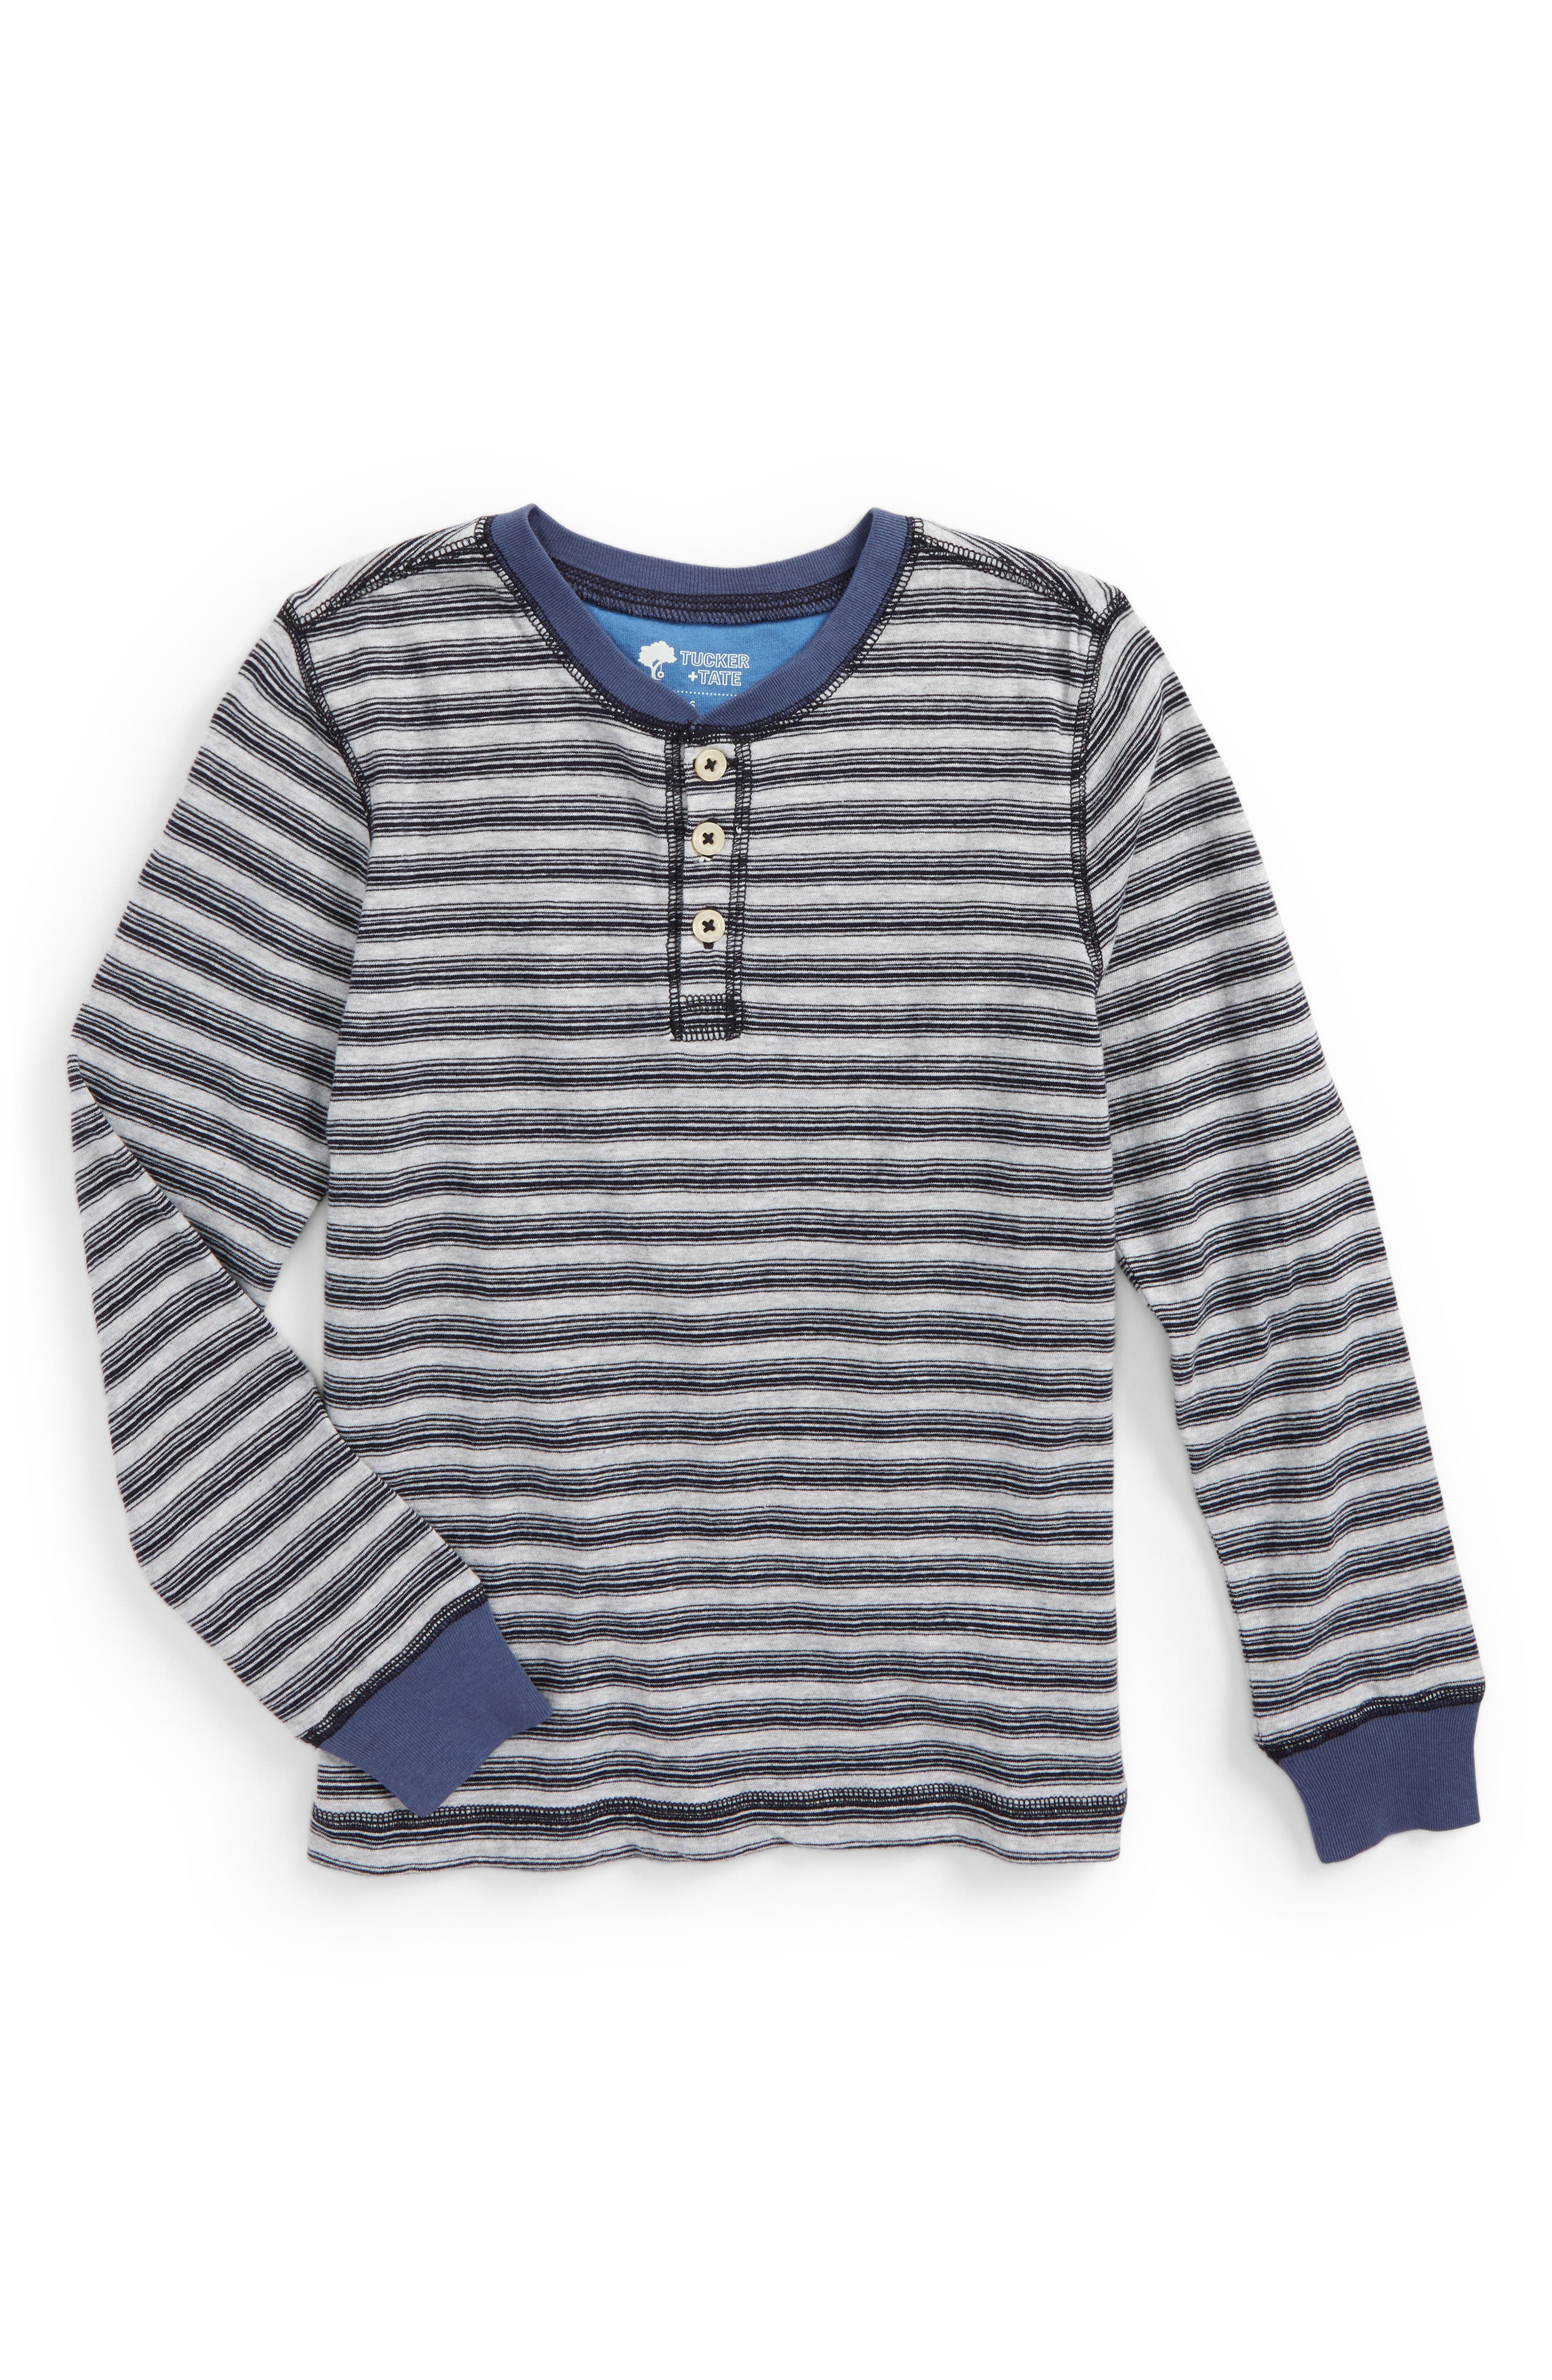 Main Image - Tucker + Tate Stripe Henley (Toddler Boys & Little Boys)